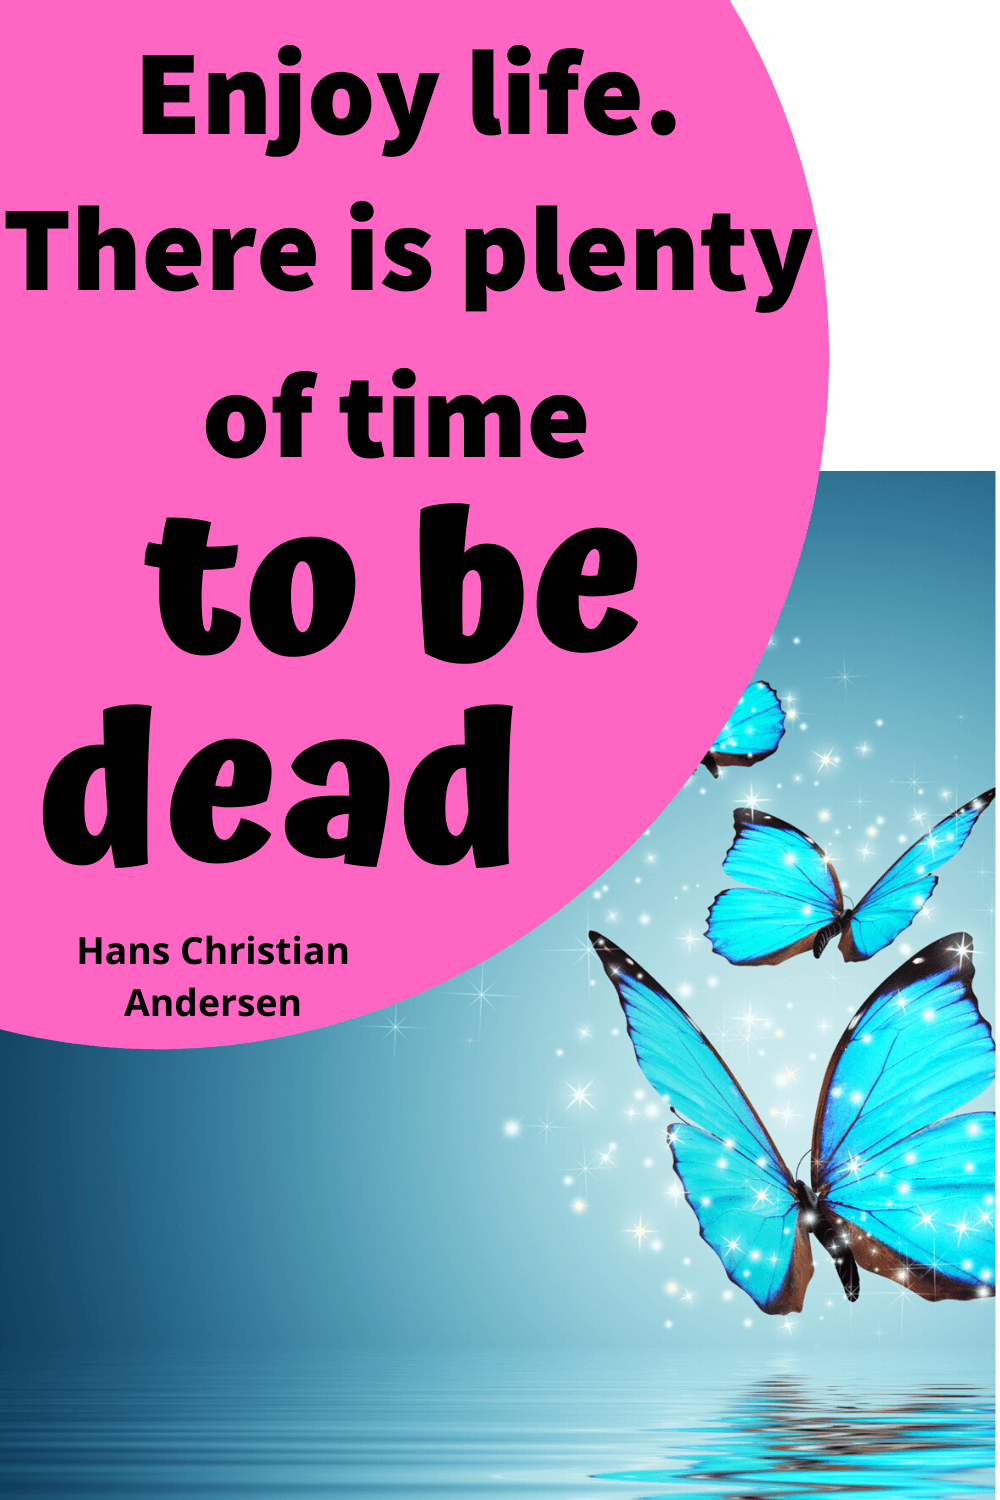 Hans Christian Andersen quotes